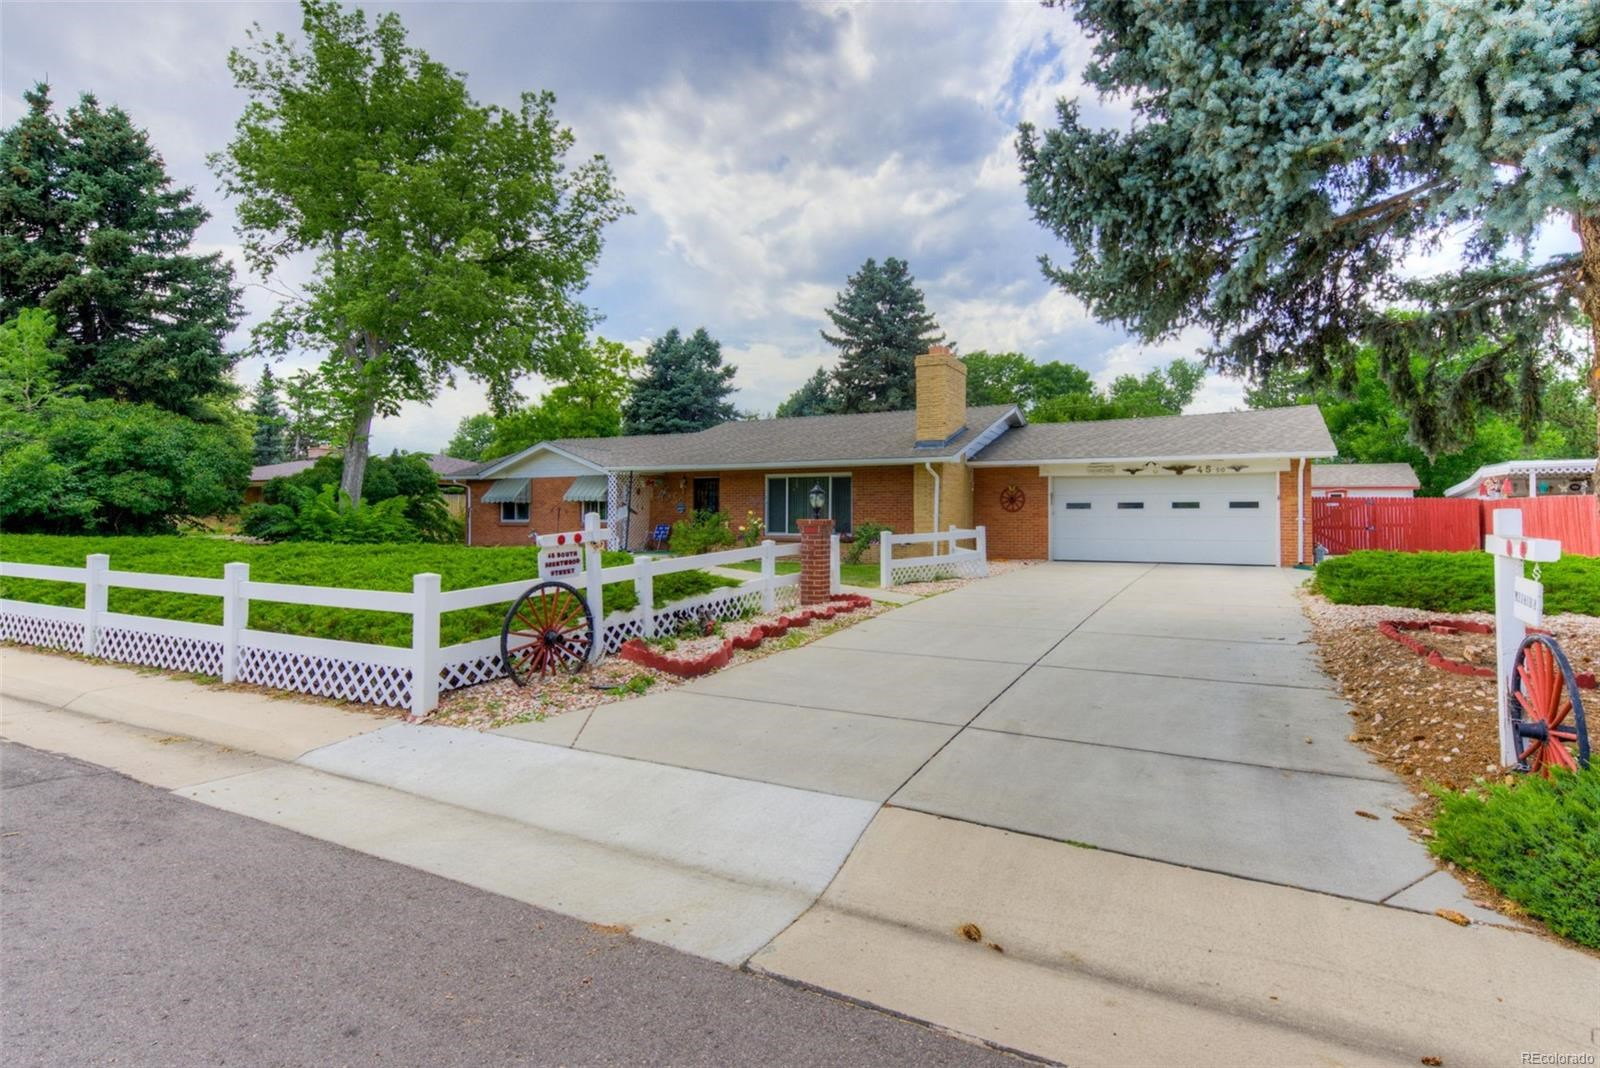 MLS# 5735873 - 3 - 45 S Brentwood Street, Lakewood, CO 80226